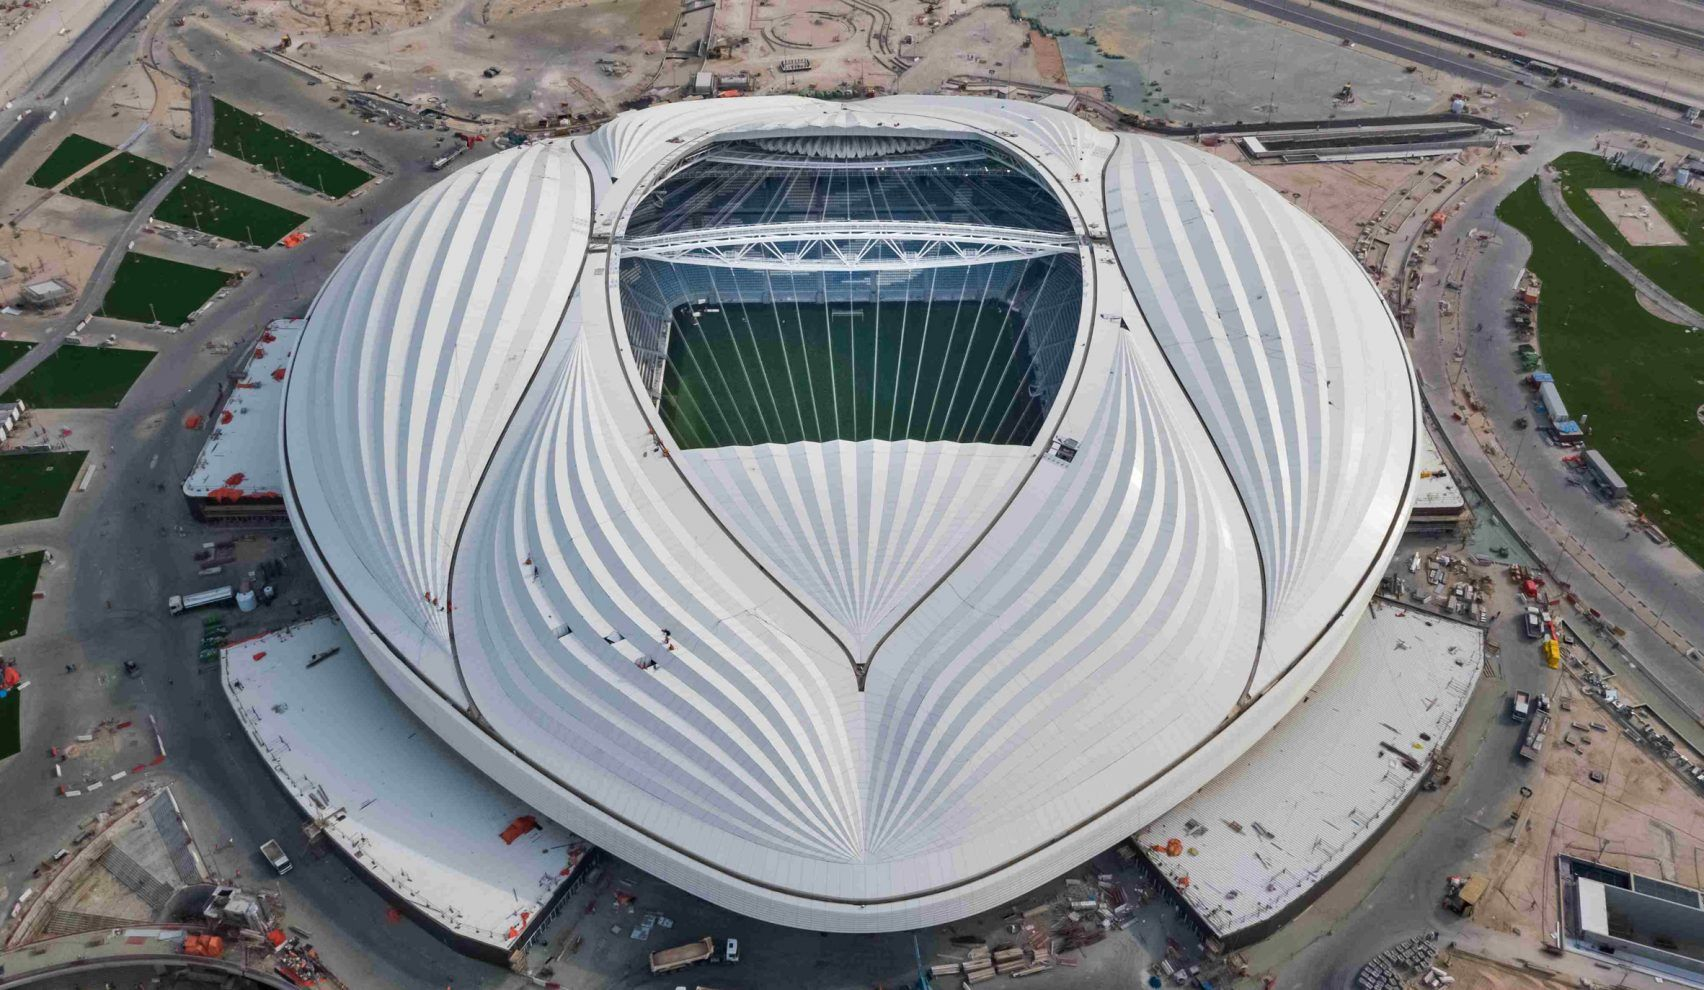 Al Wakrah Stadium Built By Zaha Hadid Architects For World Cup In Qatar Zaha Hadid Design Zaha Hadid Zaha Hadid Architects